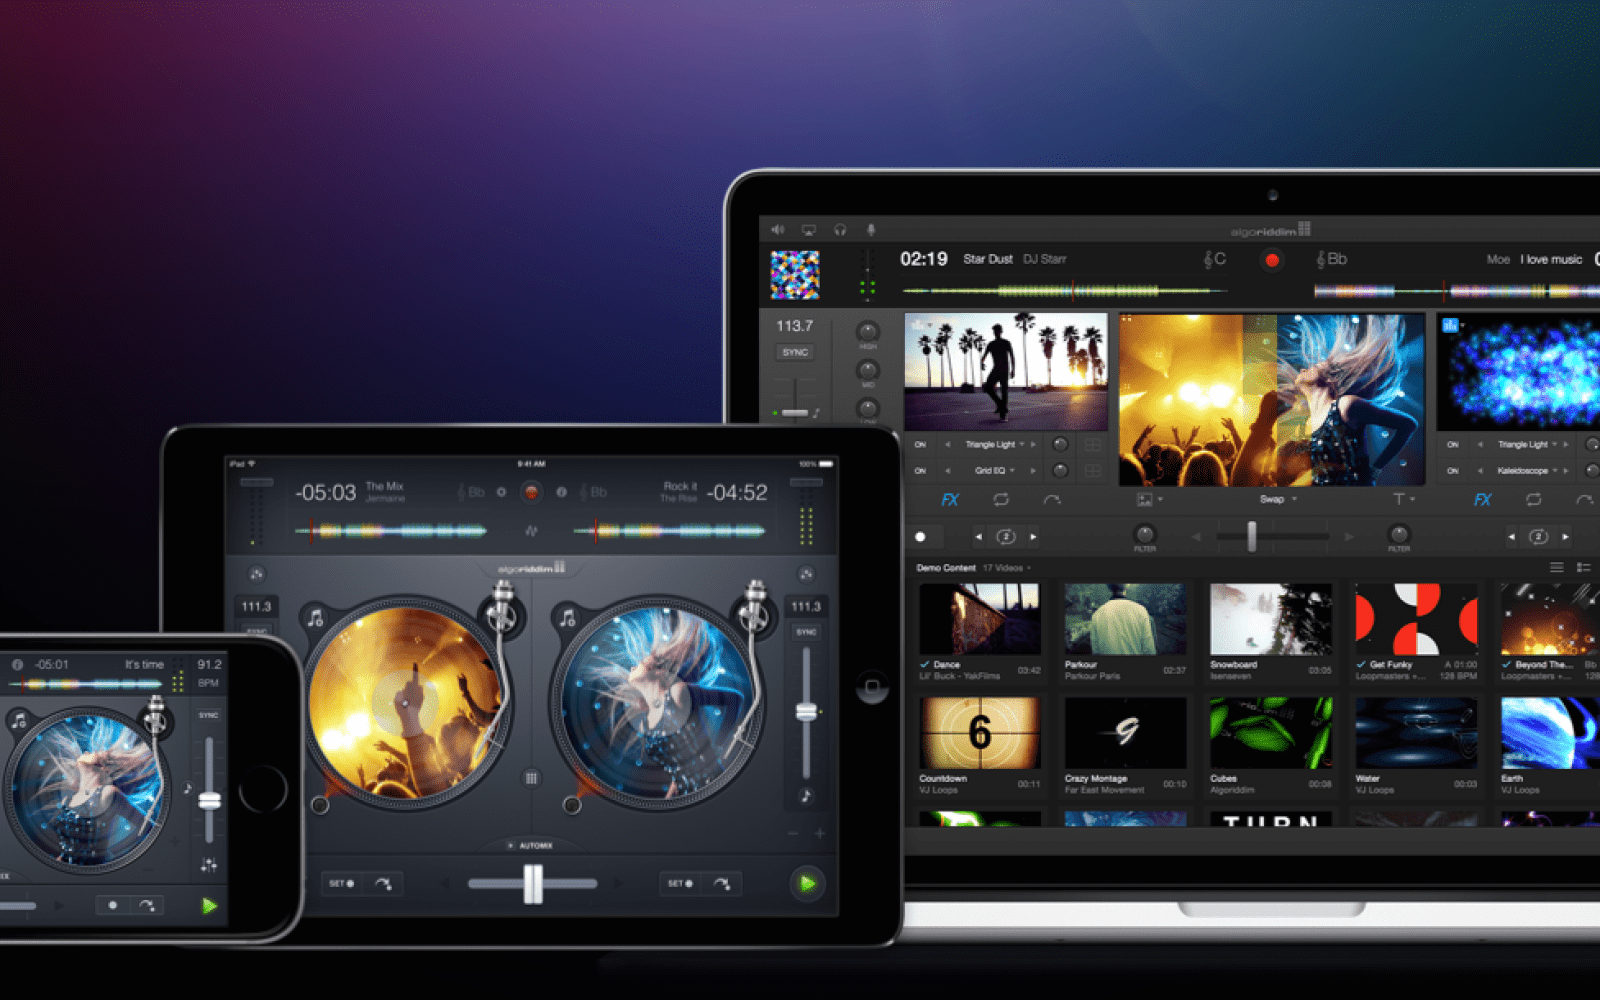 djay unveils an Apple Watch remote mixer, djay Pro for Mac gains Pioneer DJ support + video features